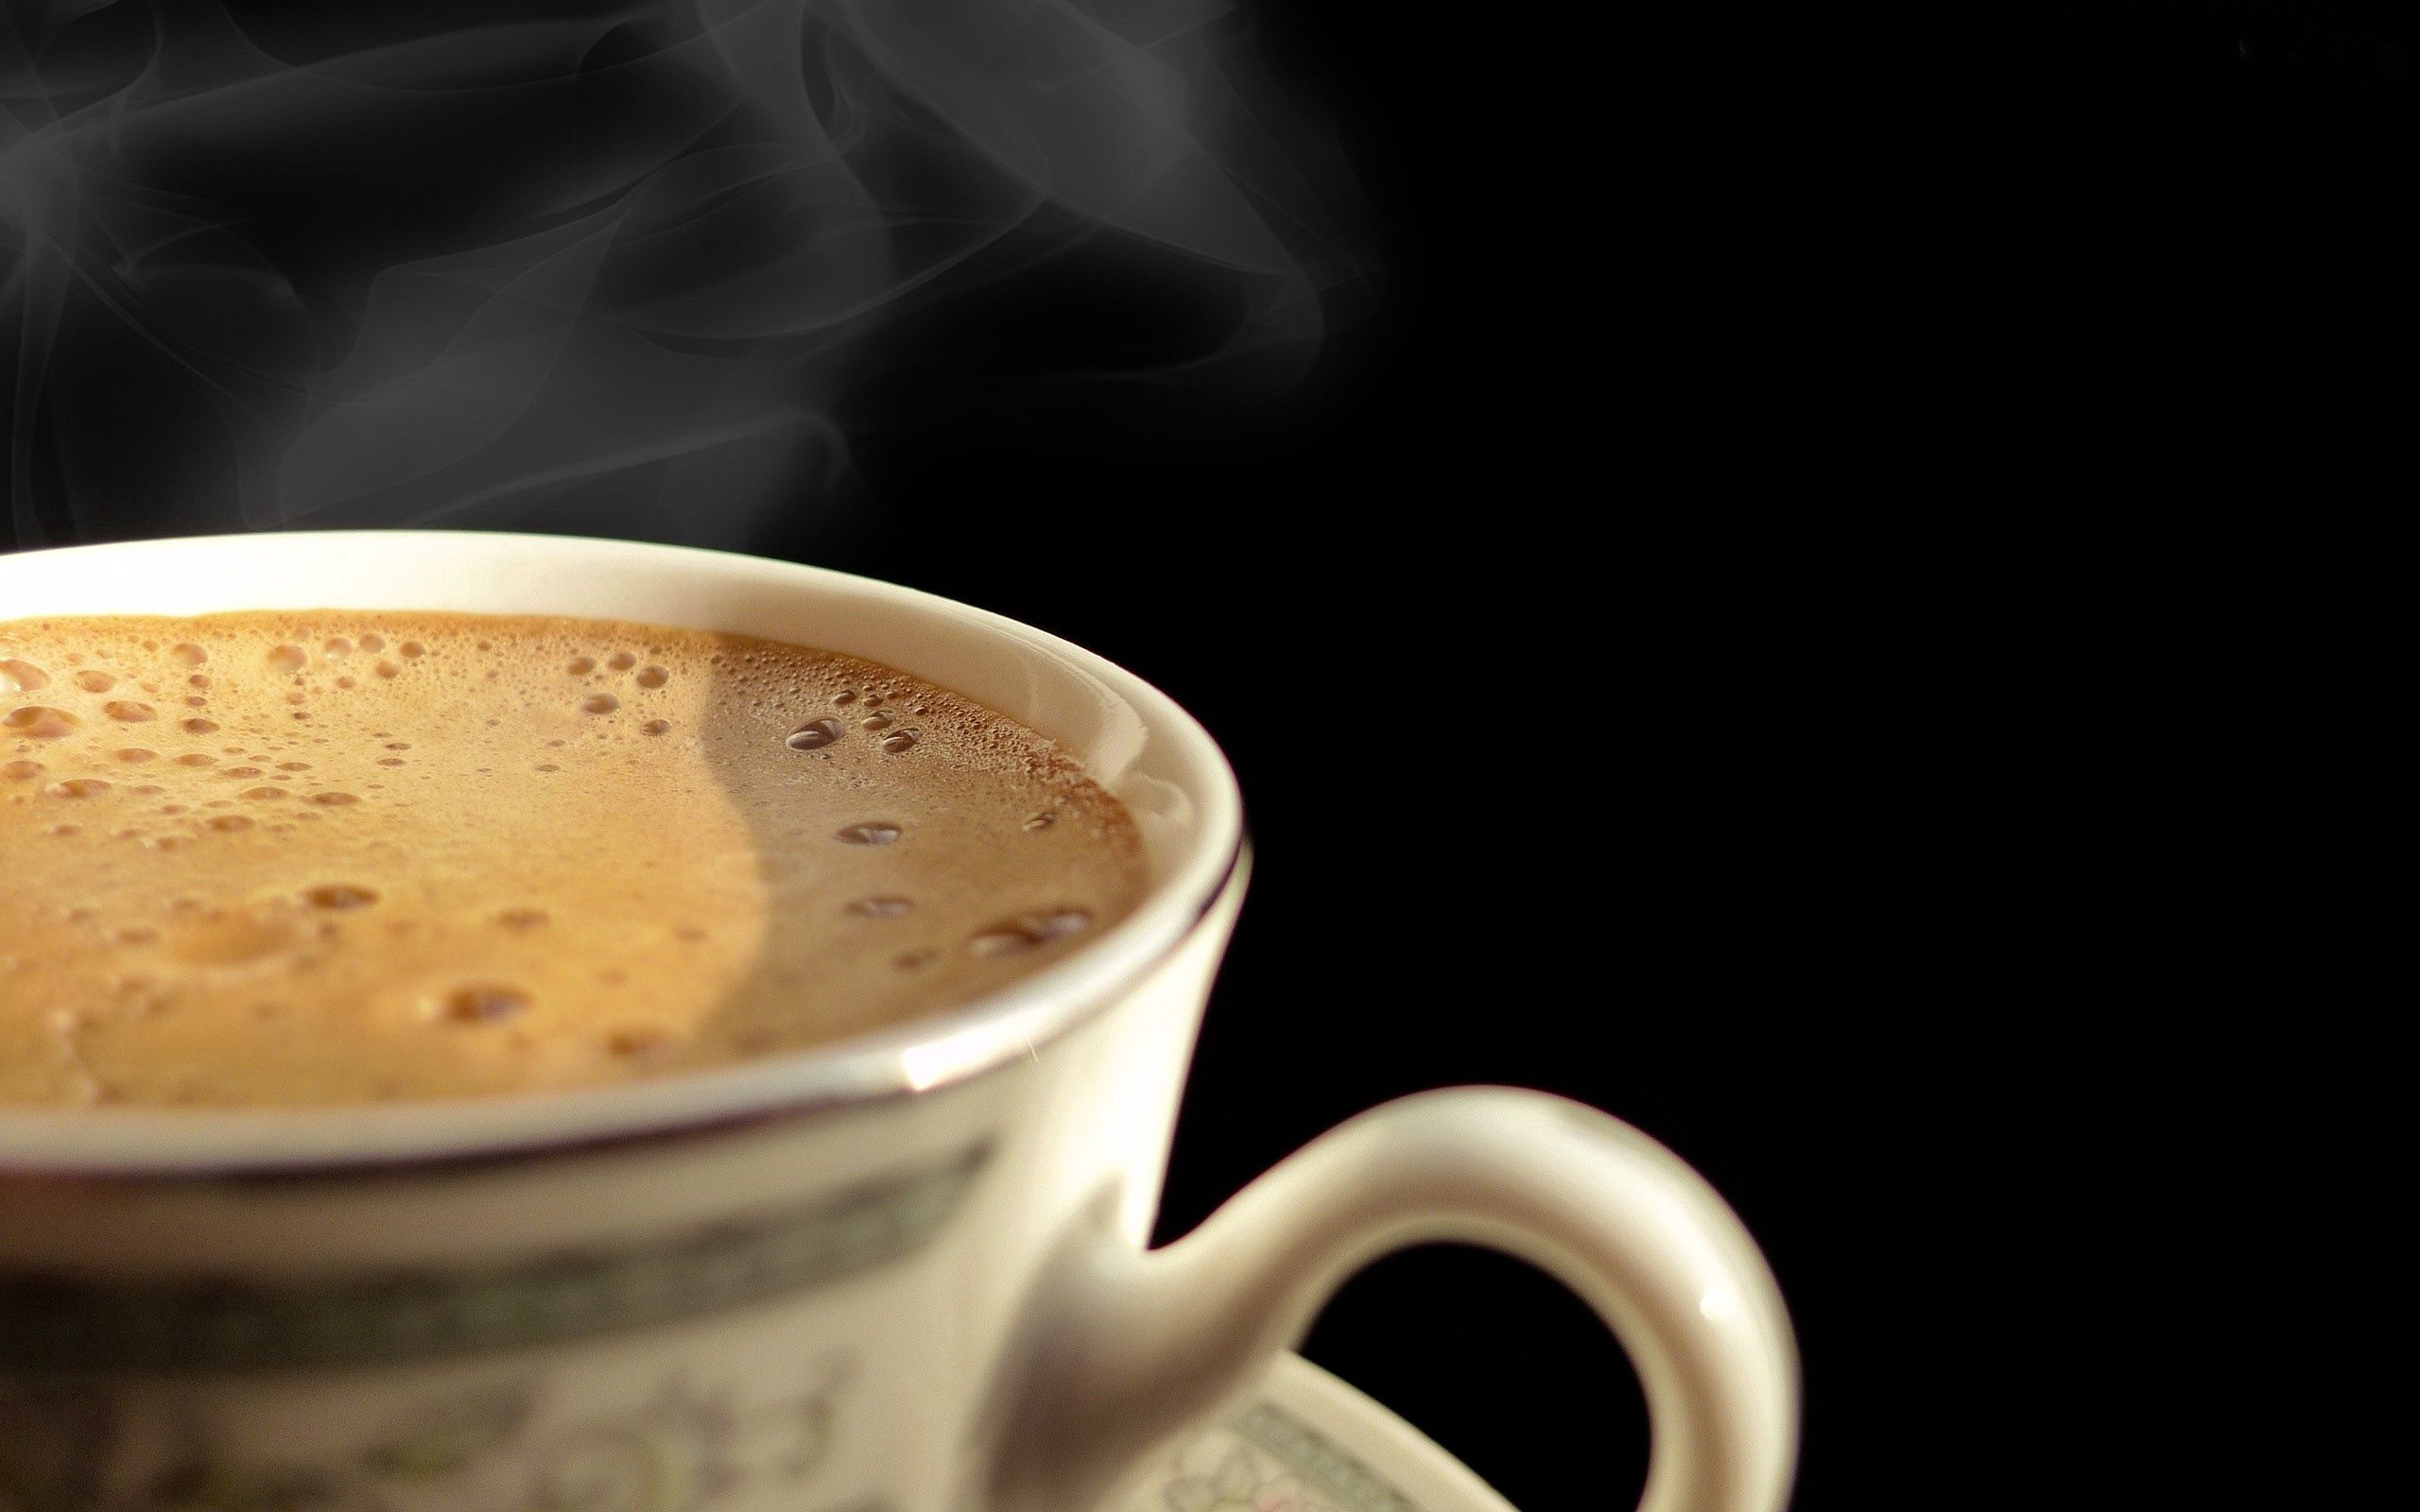 149174 download wallpaper Food, Coffee, Foam, Meerschaum, Dark Background, Cup screensavers and pictures for free